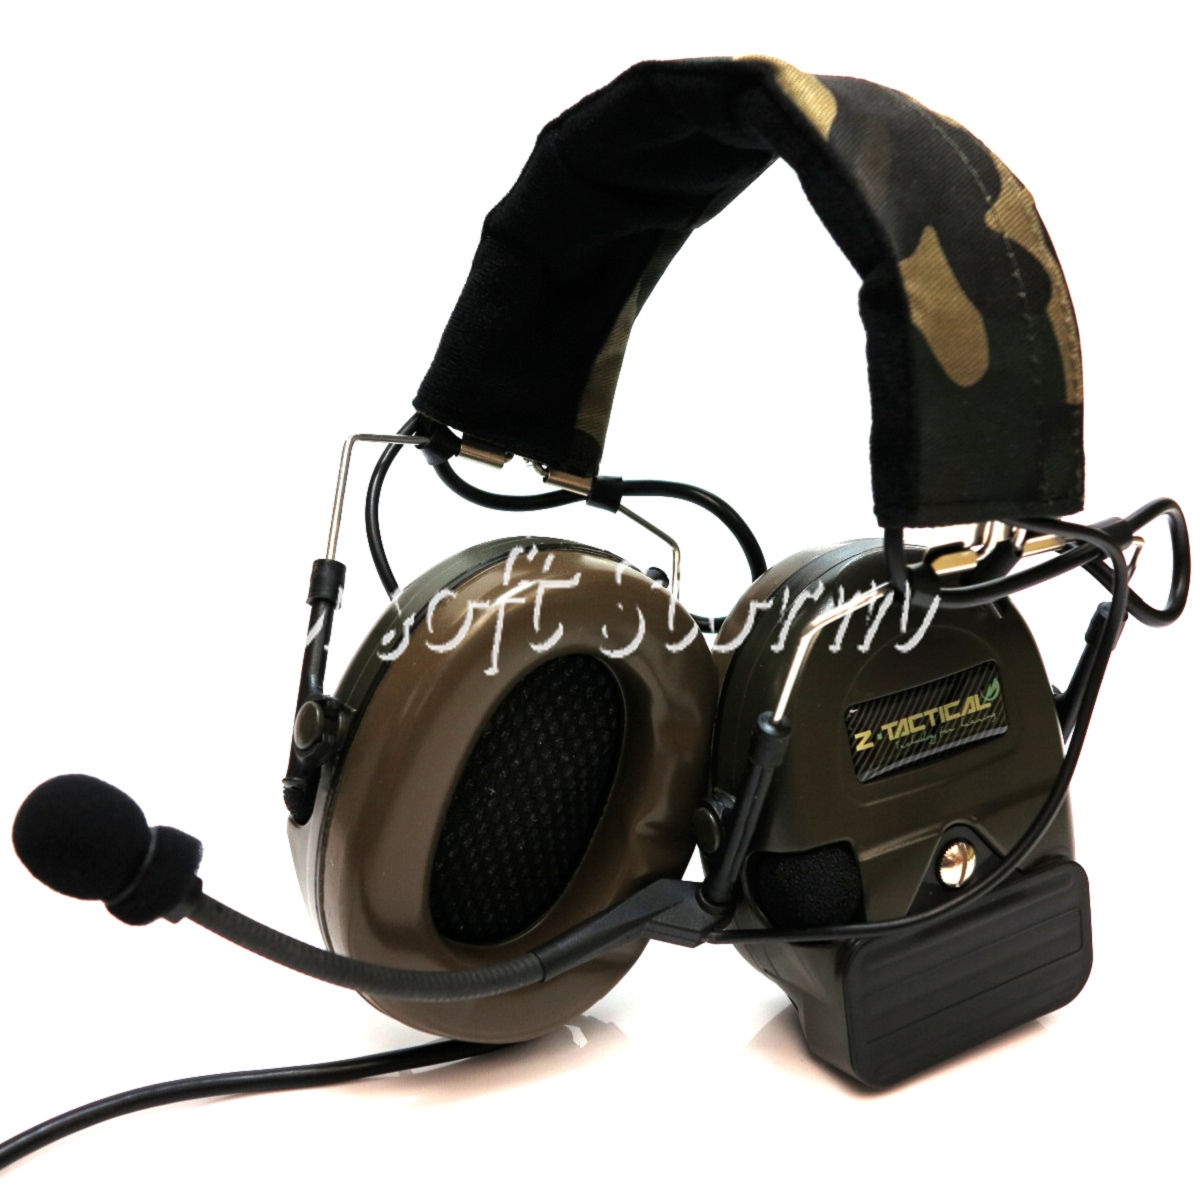 Airsoft Gear SWAT Element Comtac I Style Tactical Headset Olive Drab OD